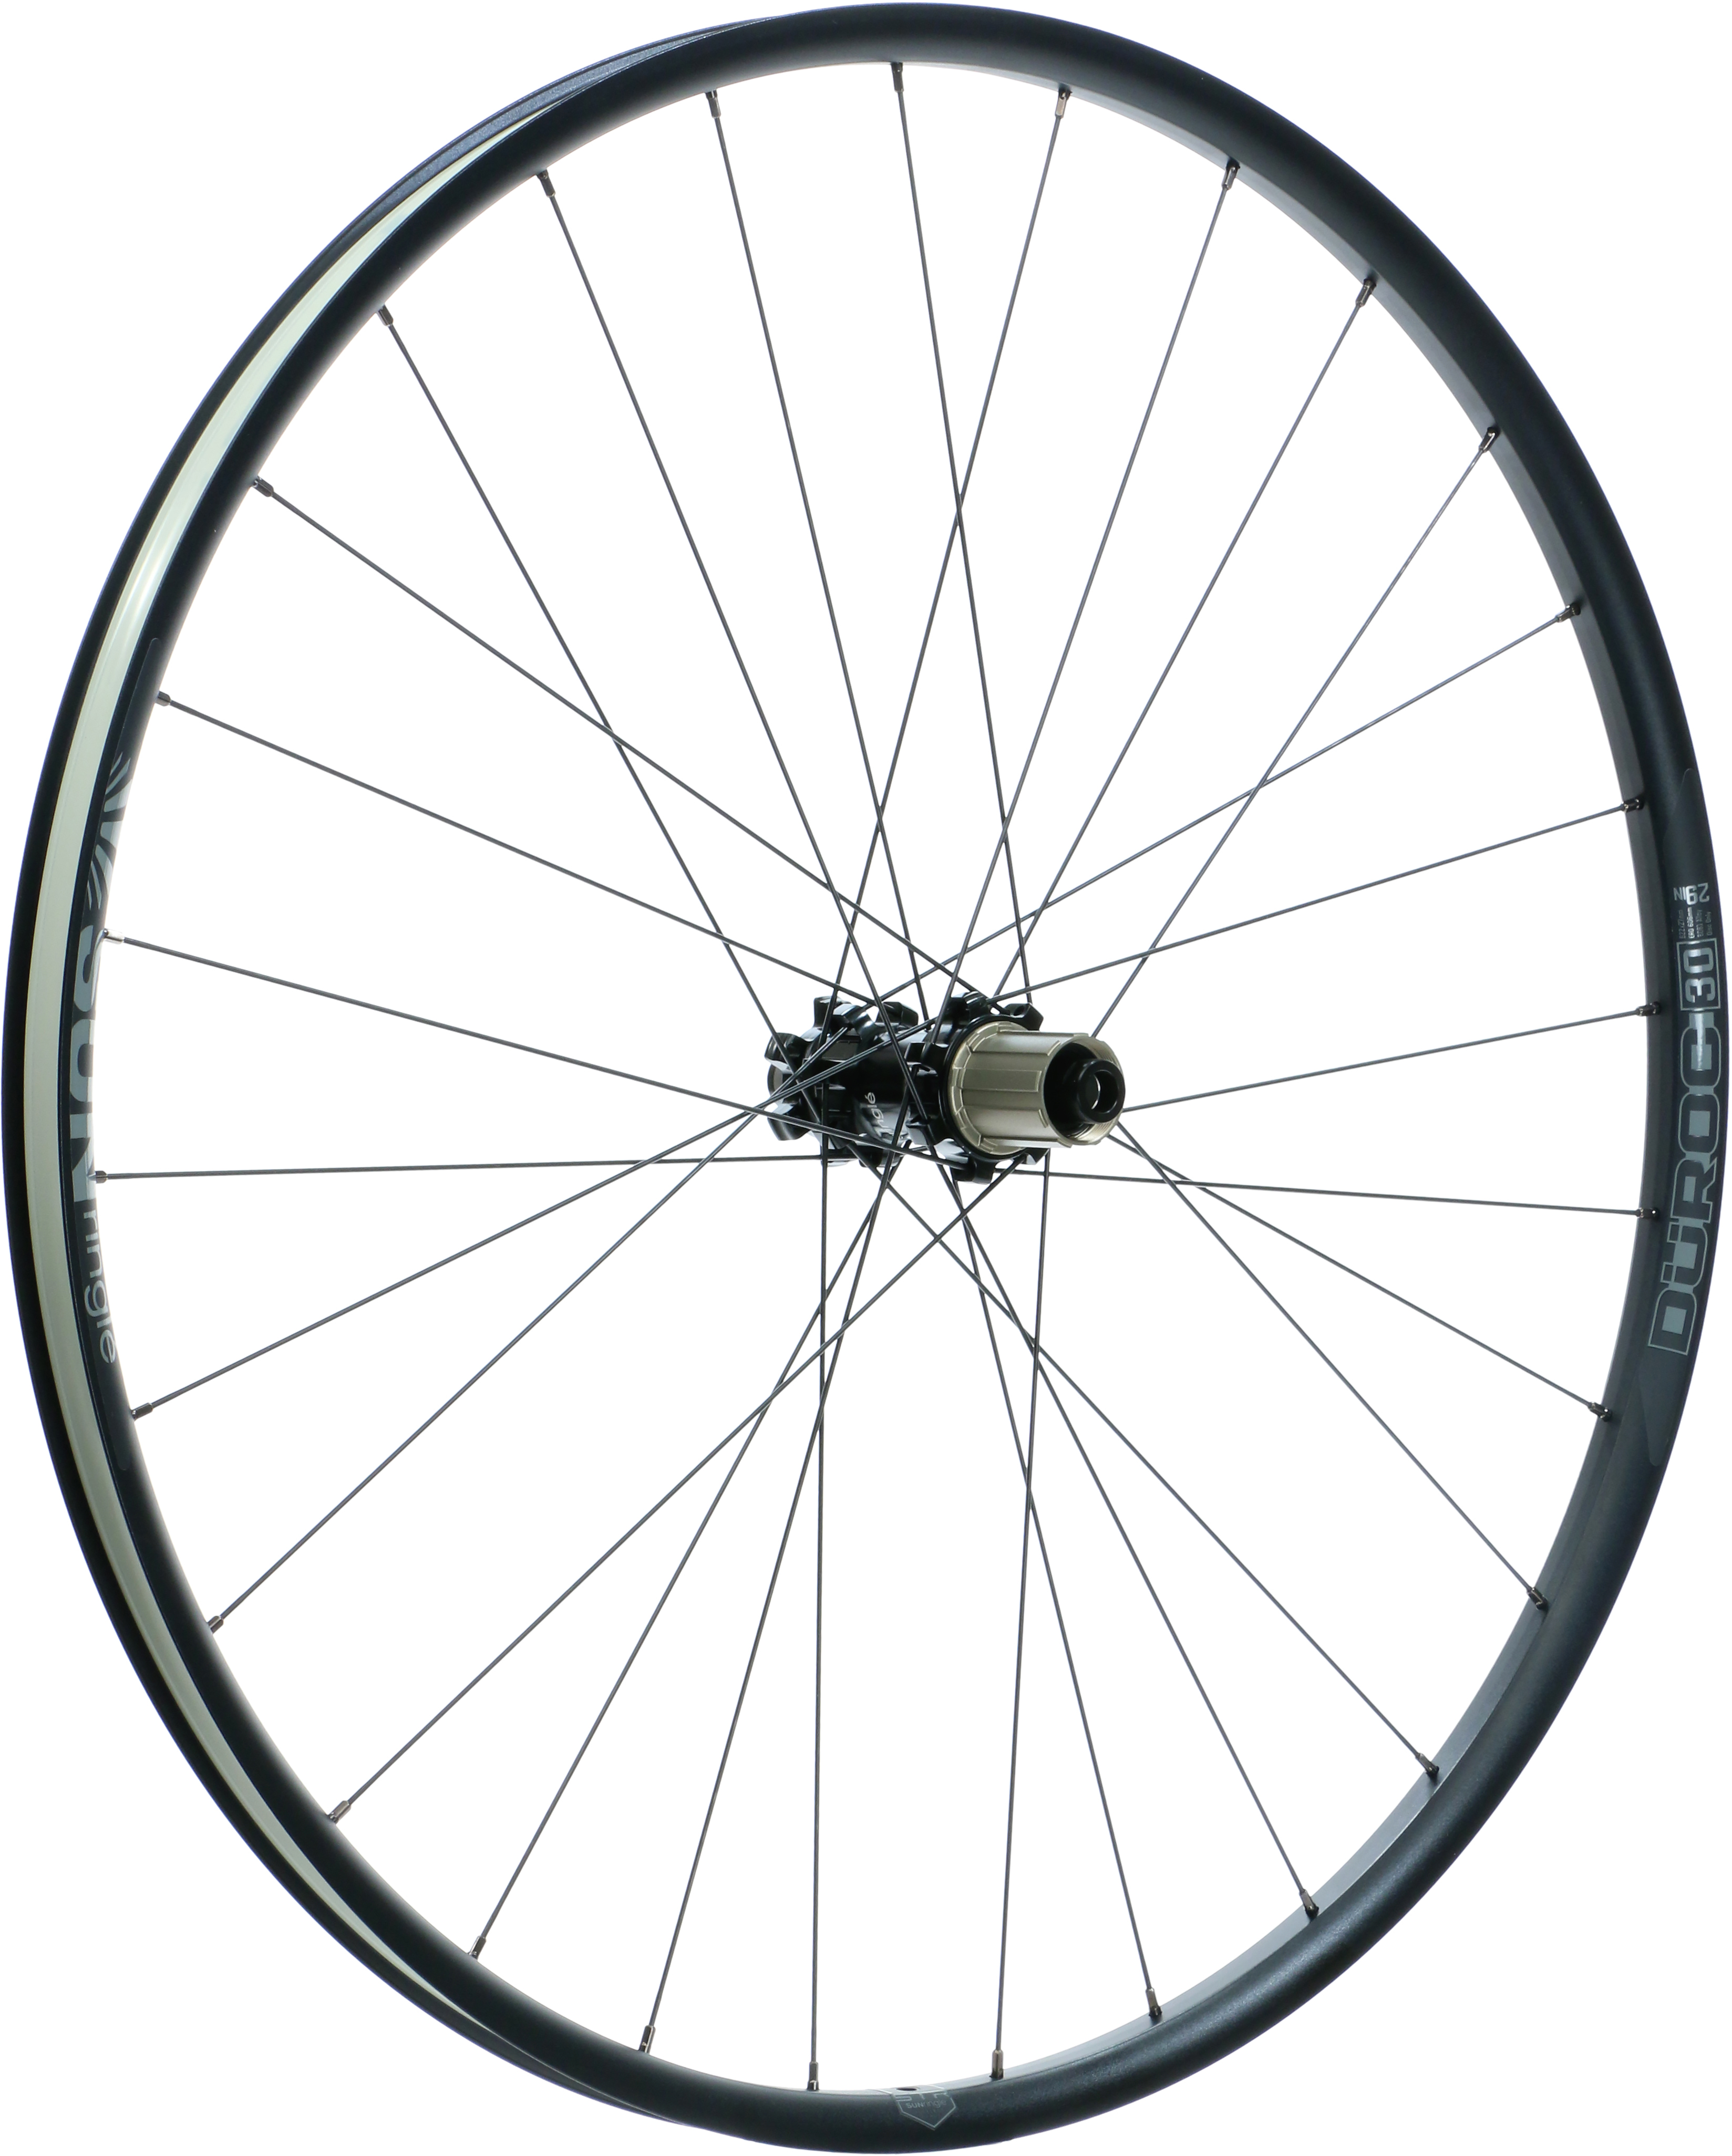 Sun Ringle Duroc 30 Expert Rear Wheel | Hjulsæt